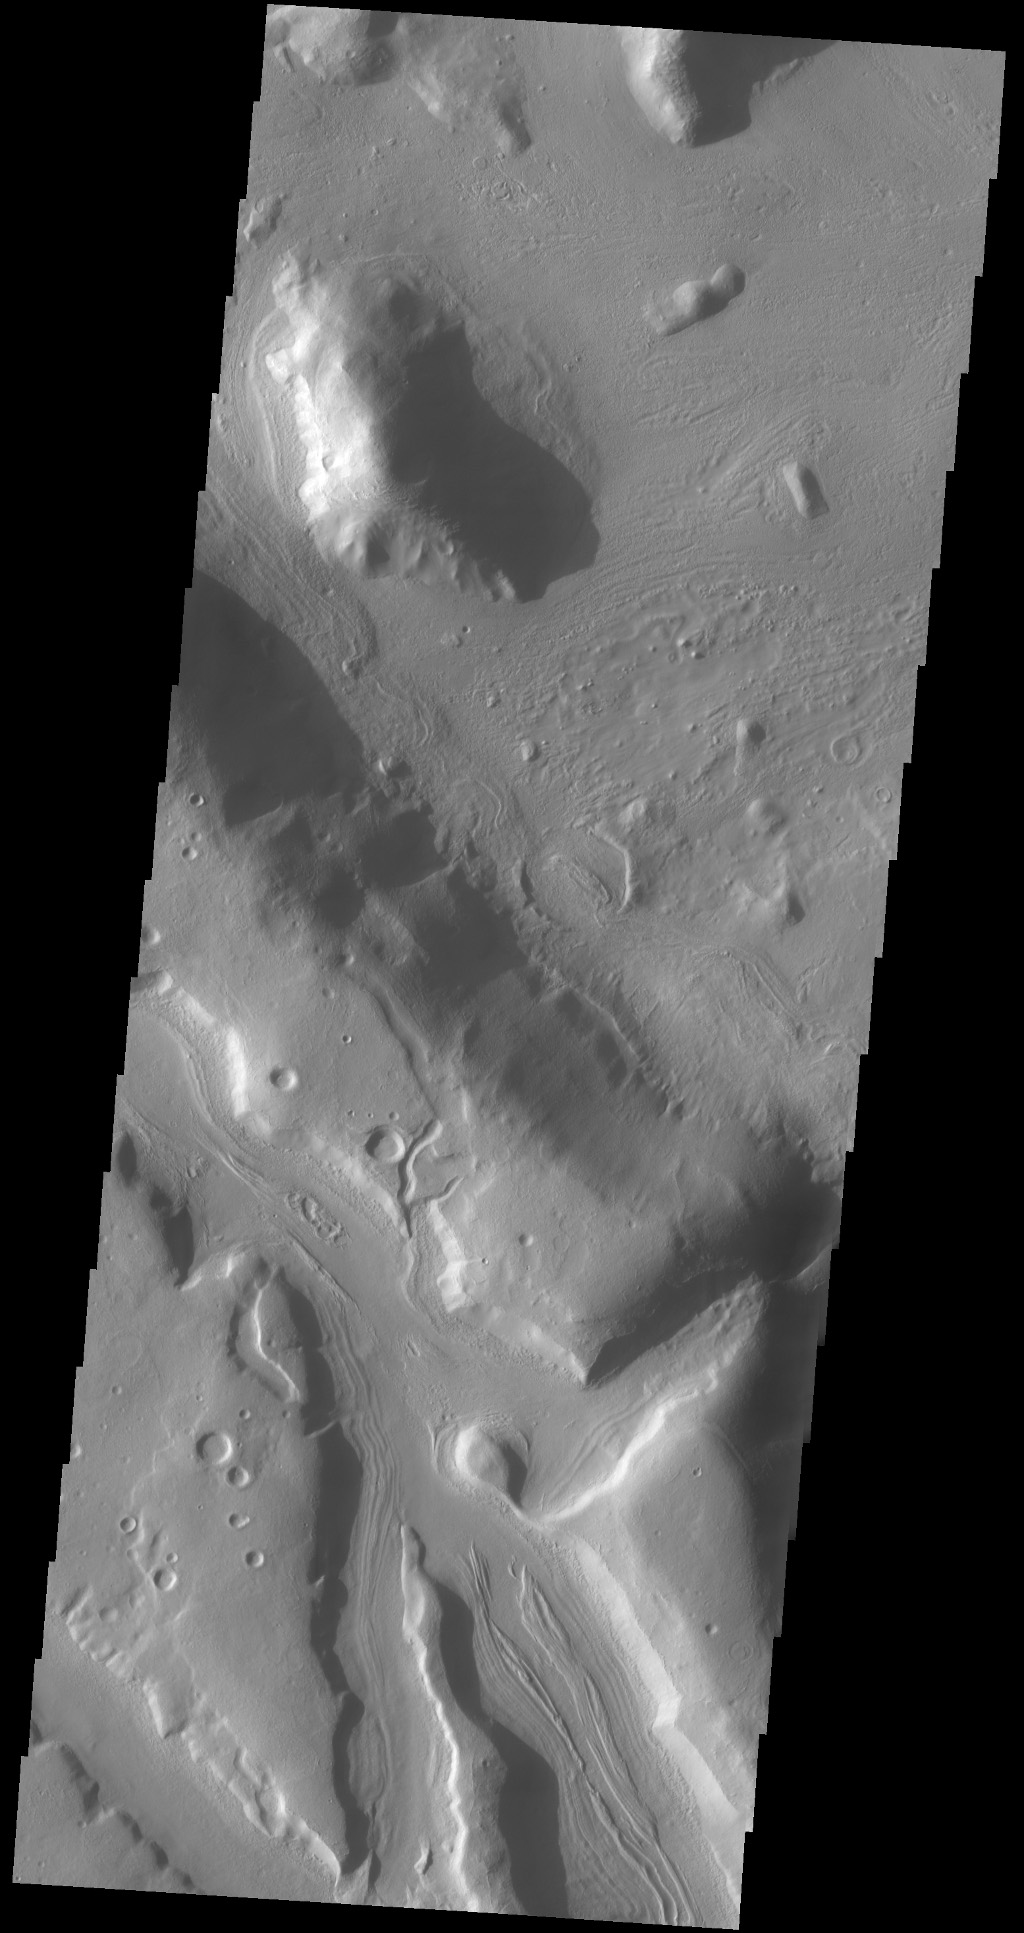 The channels in this image captured by NASA's 2001 Mars Odyssey spacecraft are part of Coloe Fossae, a series of linear depressions on the northeast margin of Terra Sabaea.